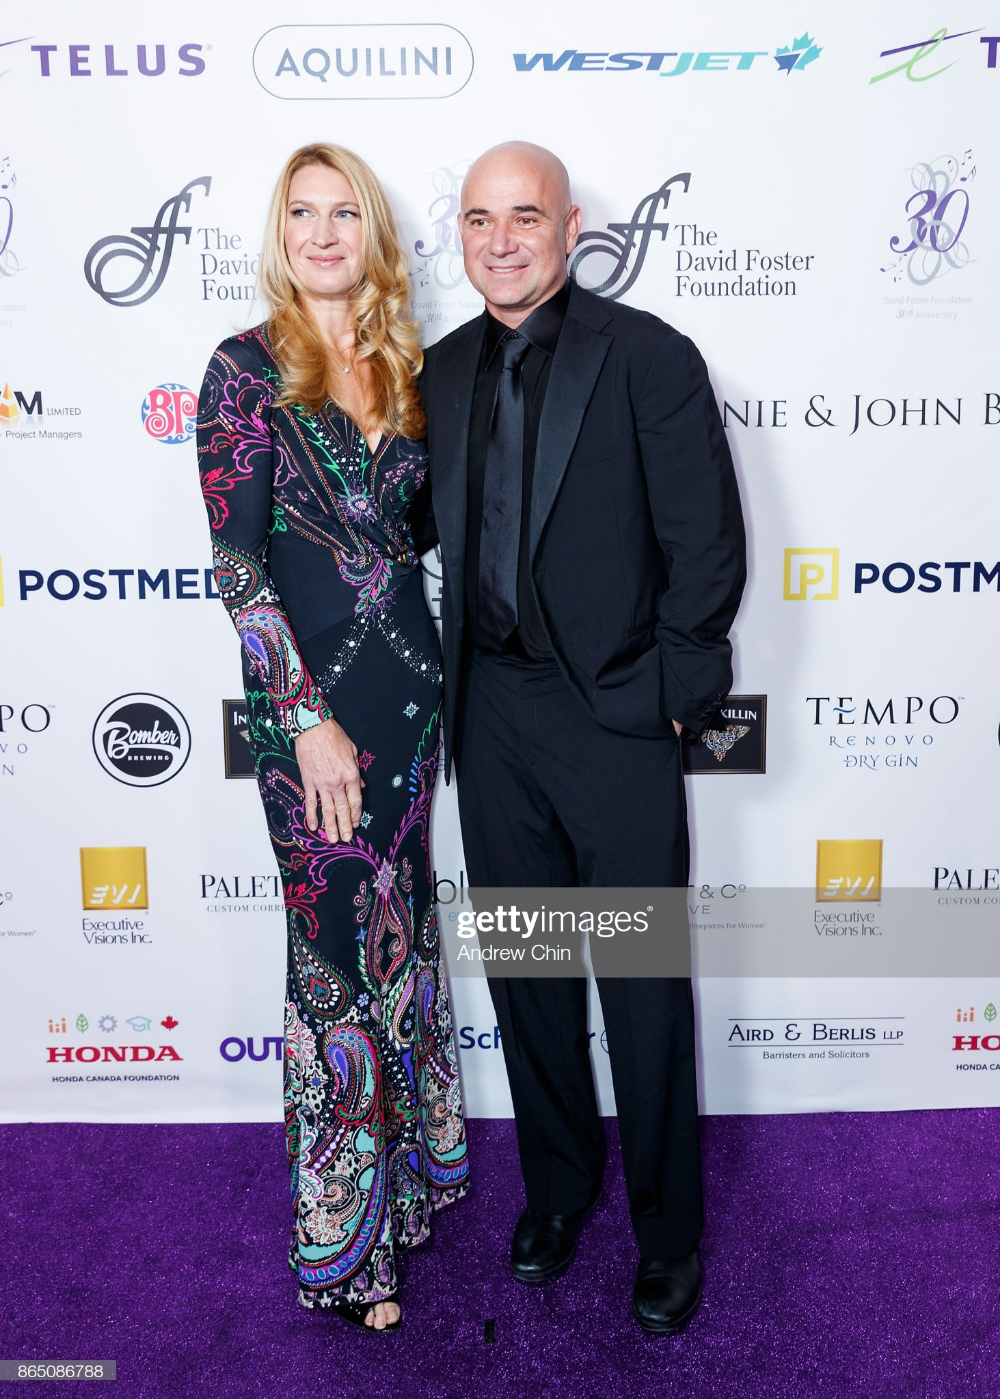 Steffi Graf And Andre Agassi Arrive For The David Foster Foundation Steffi Graf The Fosters David